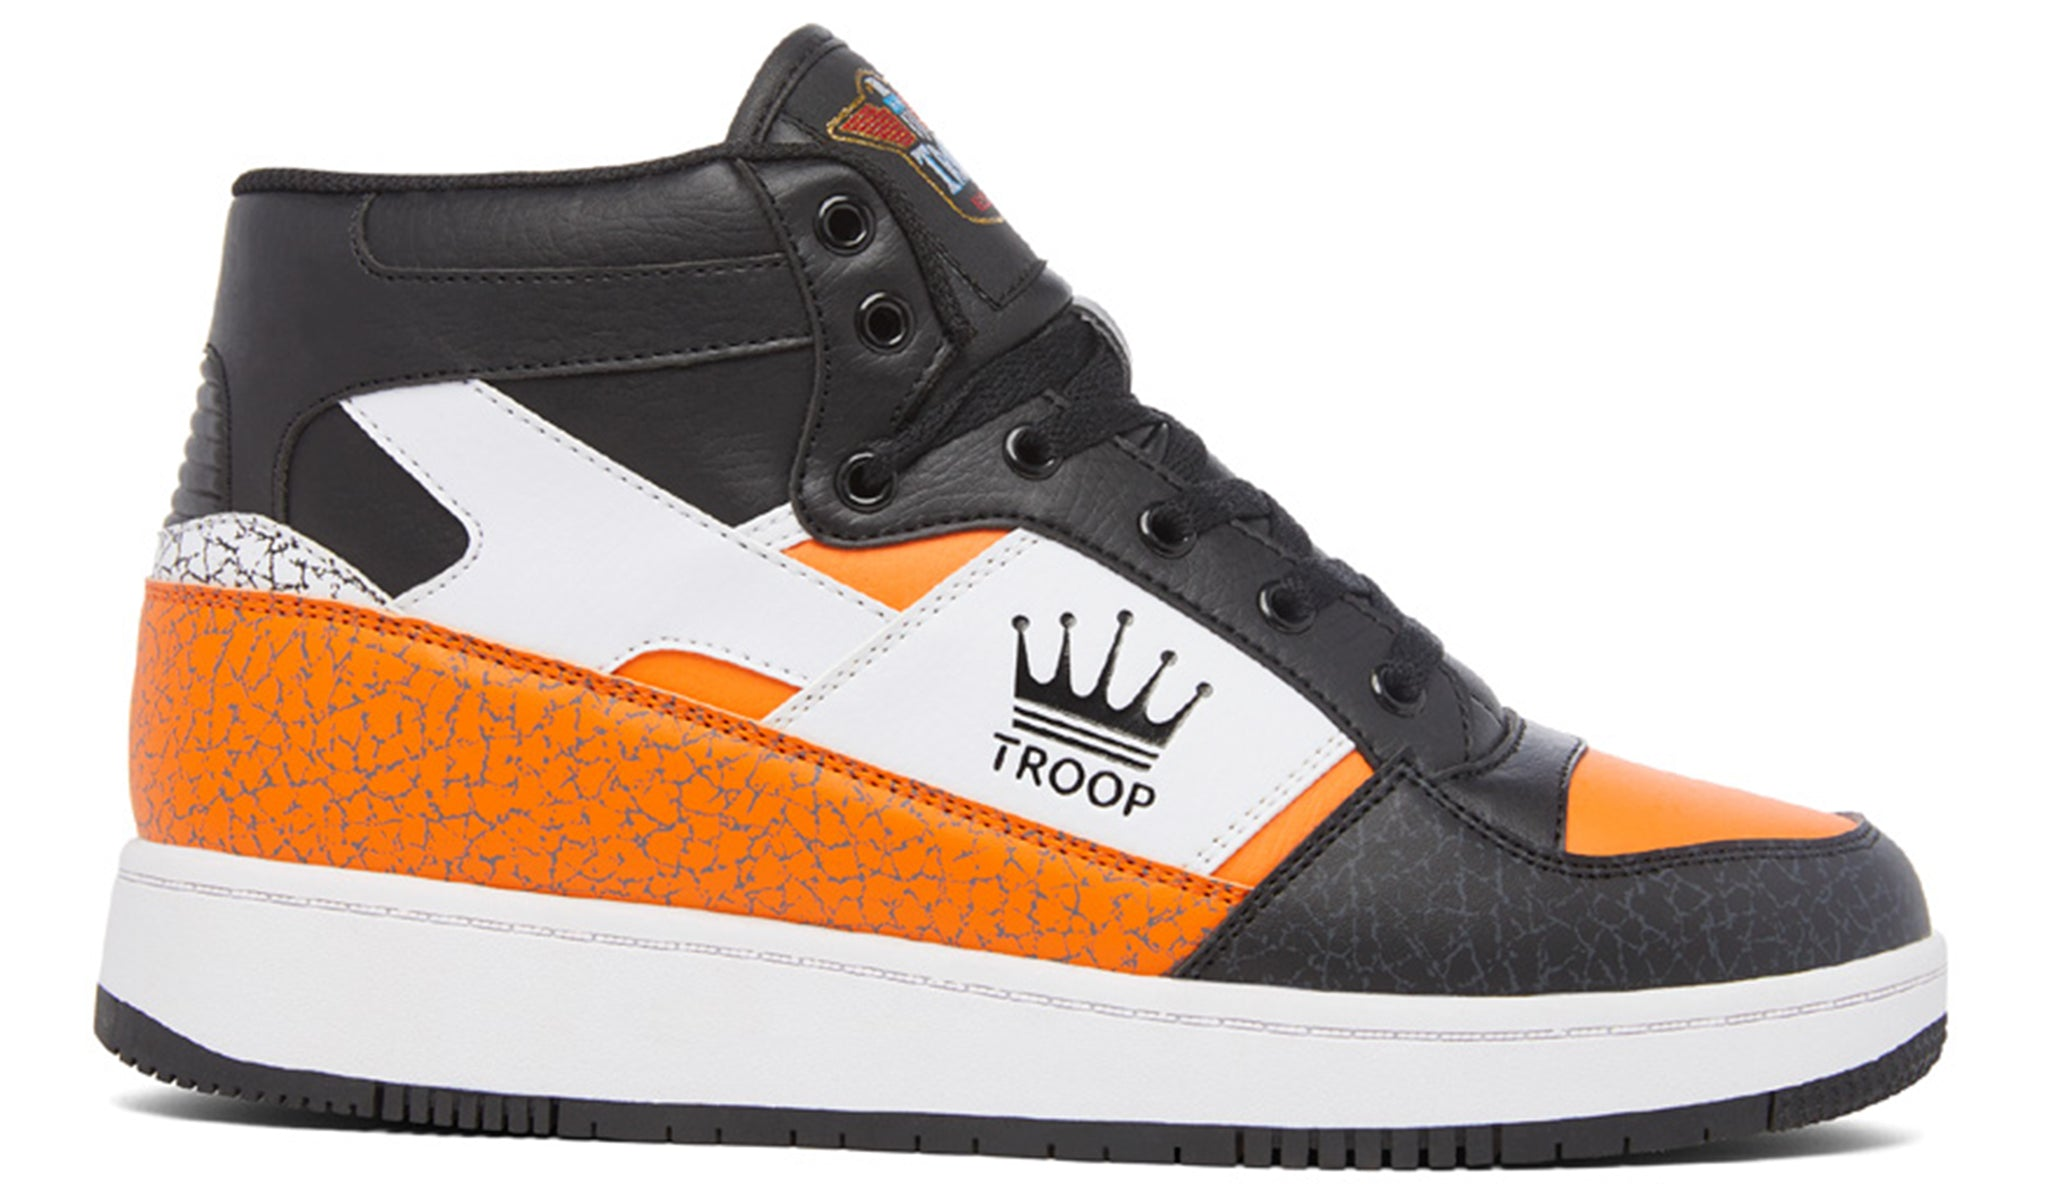 Official Shop for World of Troop, Troop shoes & Troop Jackets